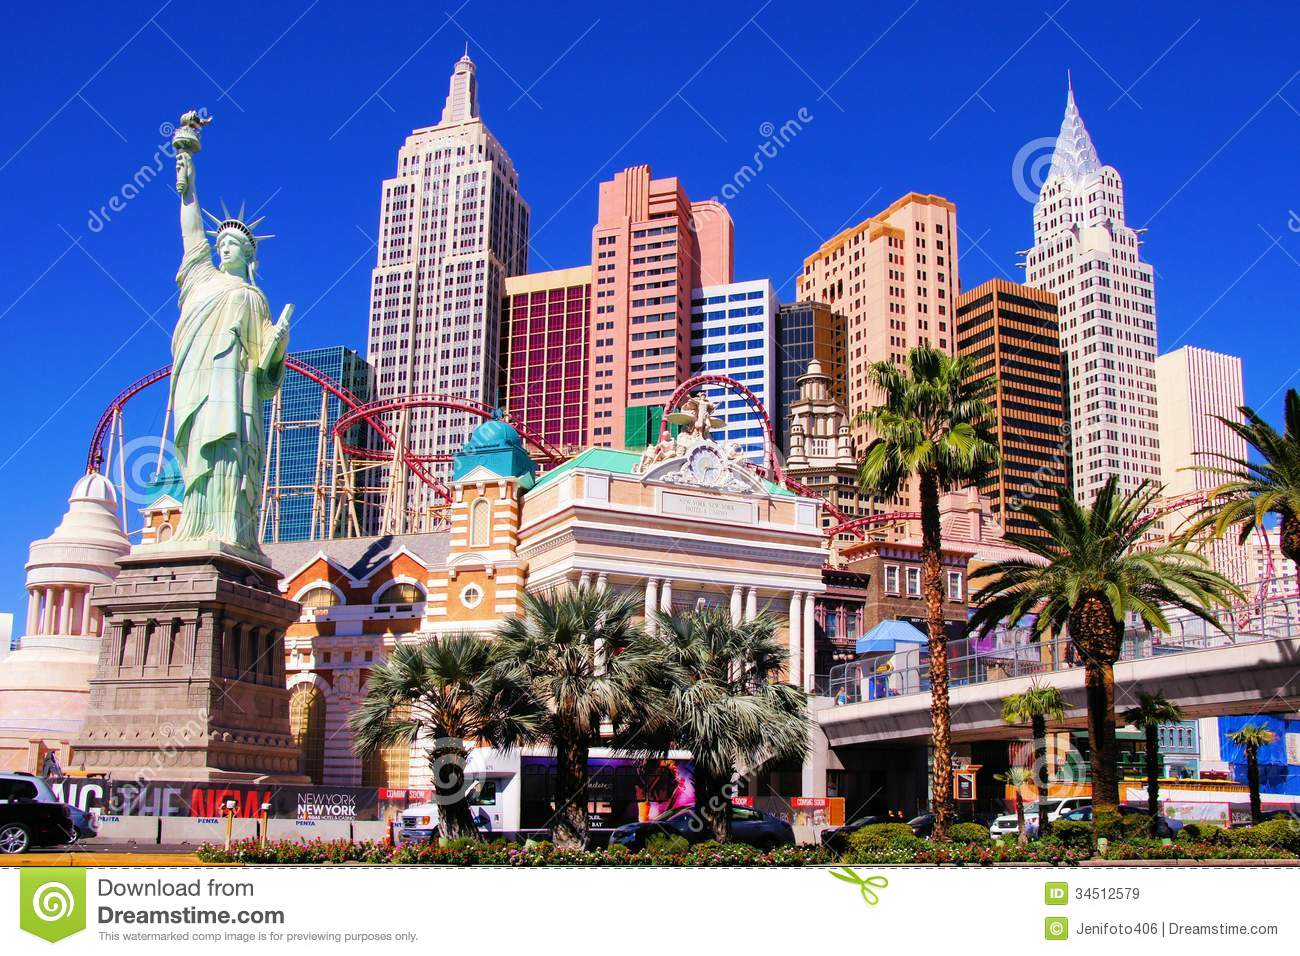 New york new york las vegas editorial stock image for Garden statues las vegas nv